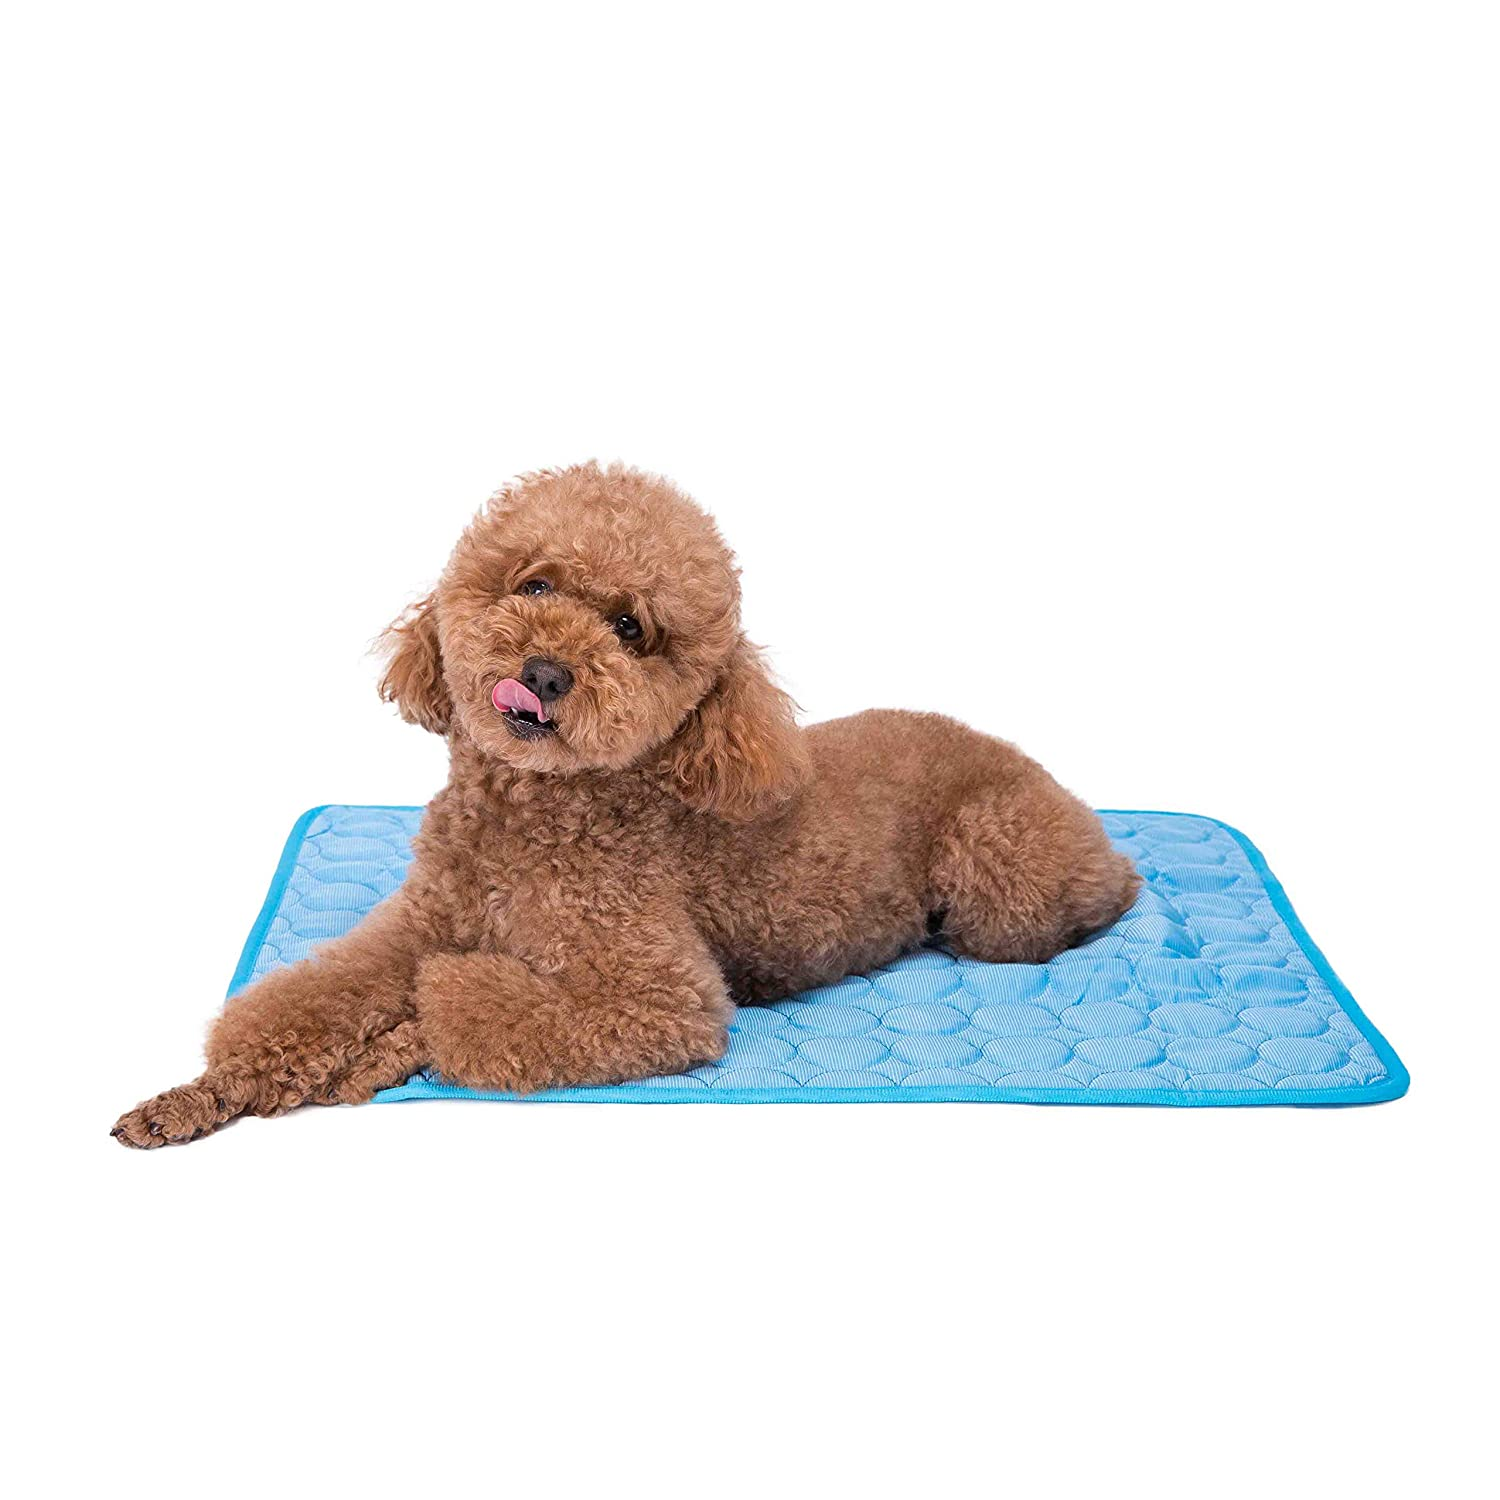 Faith Force Pet Cooling Mat - Ice Silk Cooling Mat for Dogs & Cats, Portable & Washable Pet Cooling Blanket for Outdoor, Car Seats, Beds and More in Summer